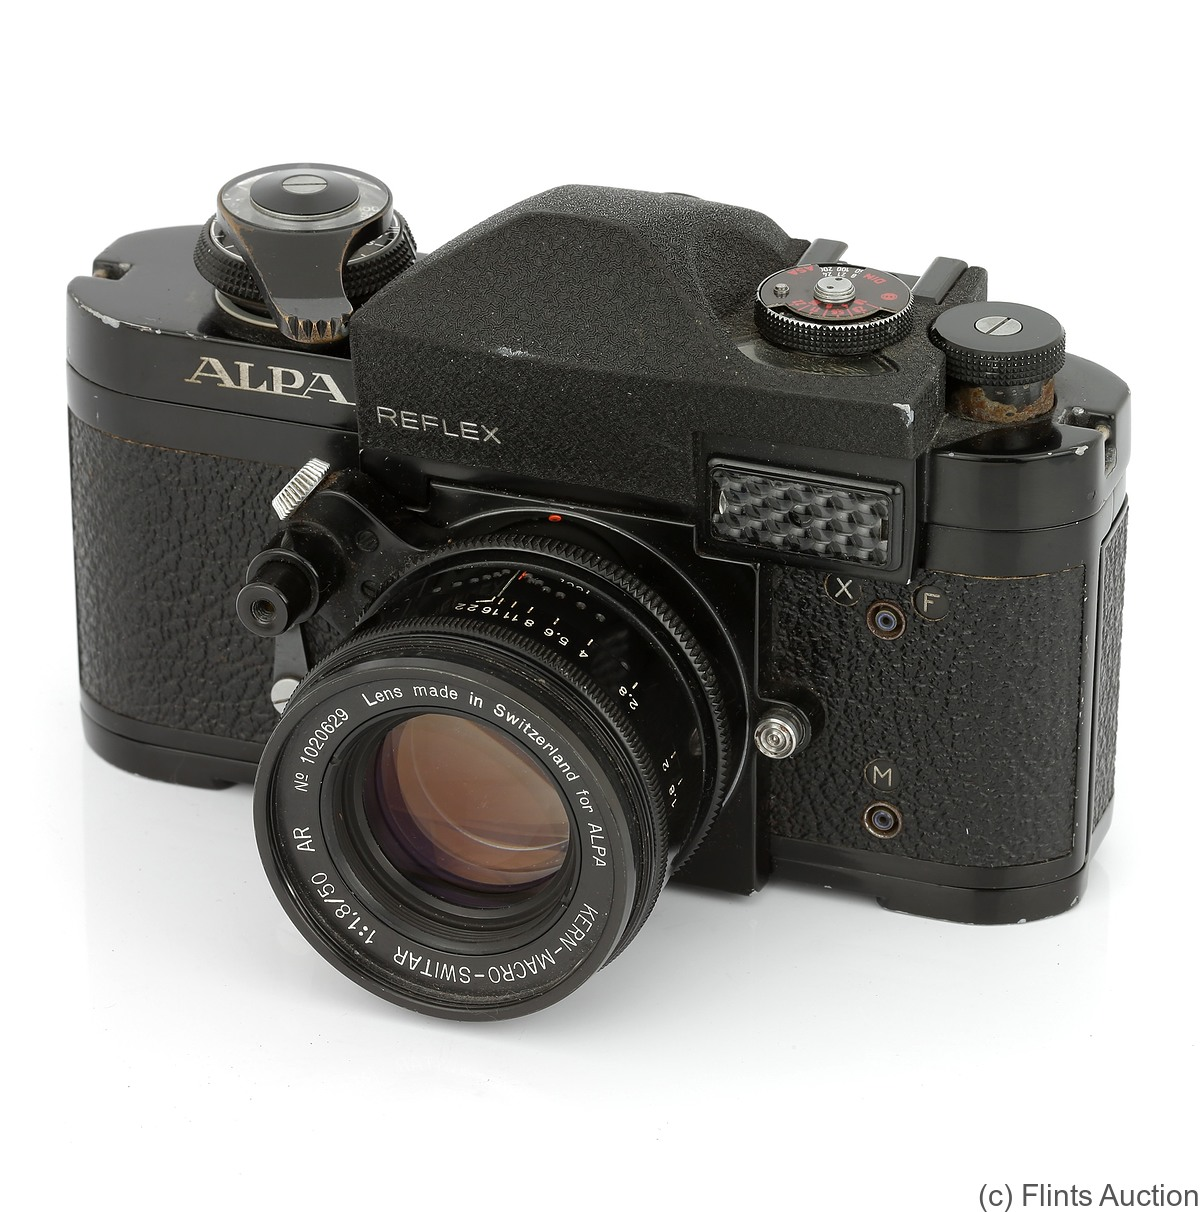 Pignons: Alpa 6c (black) camera